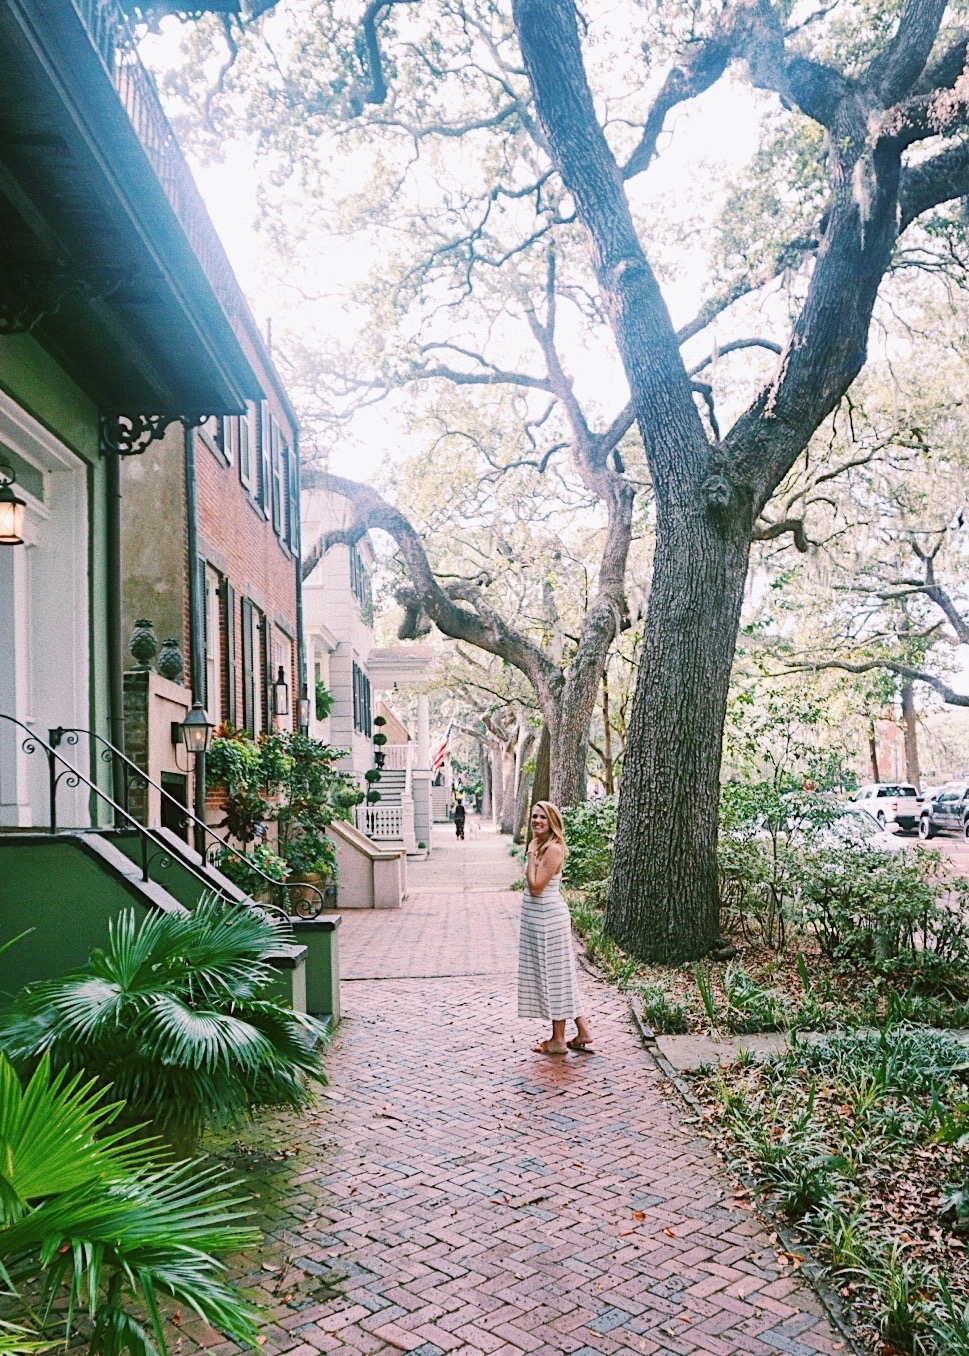 Jones Street, Savannah Georgia